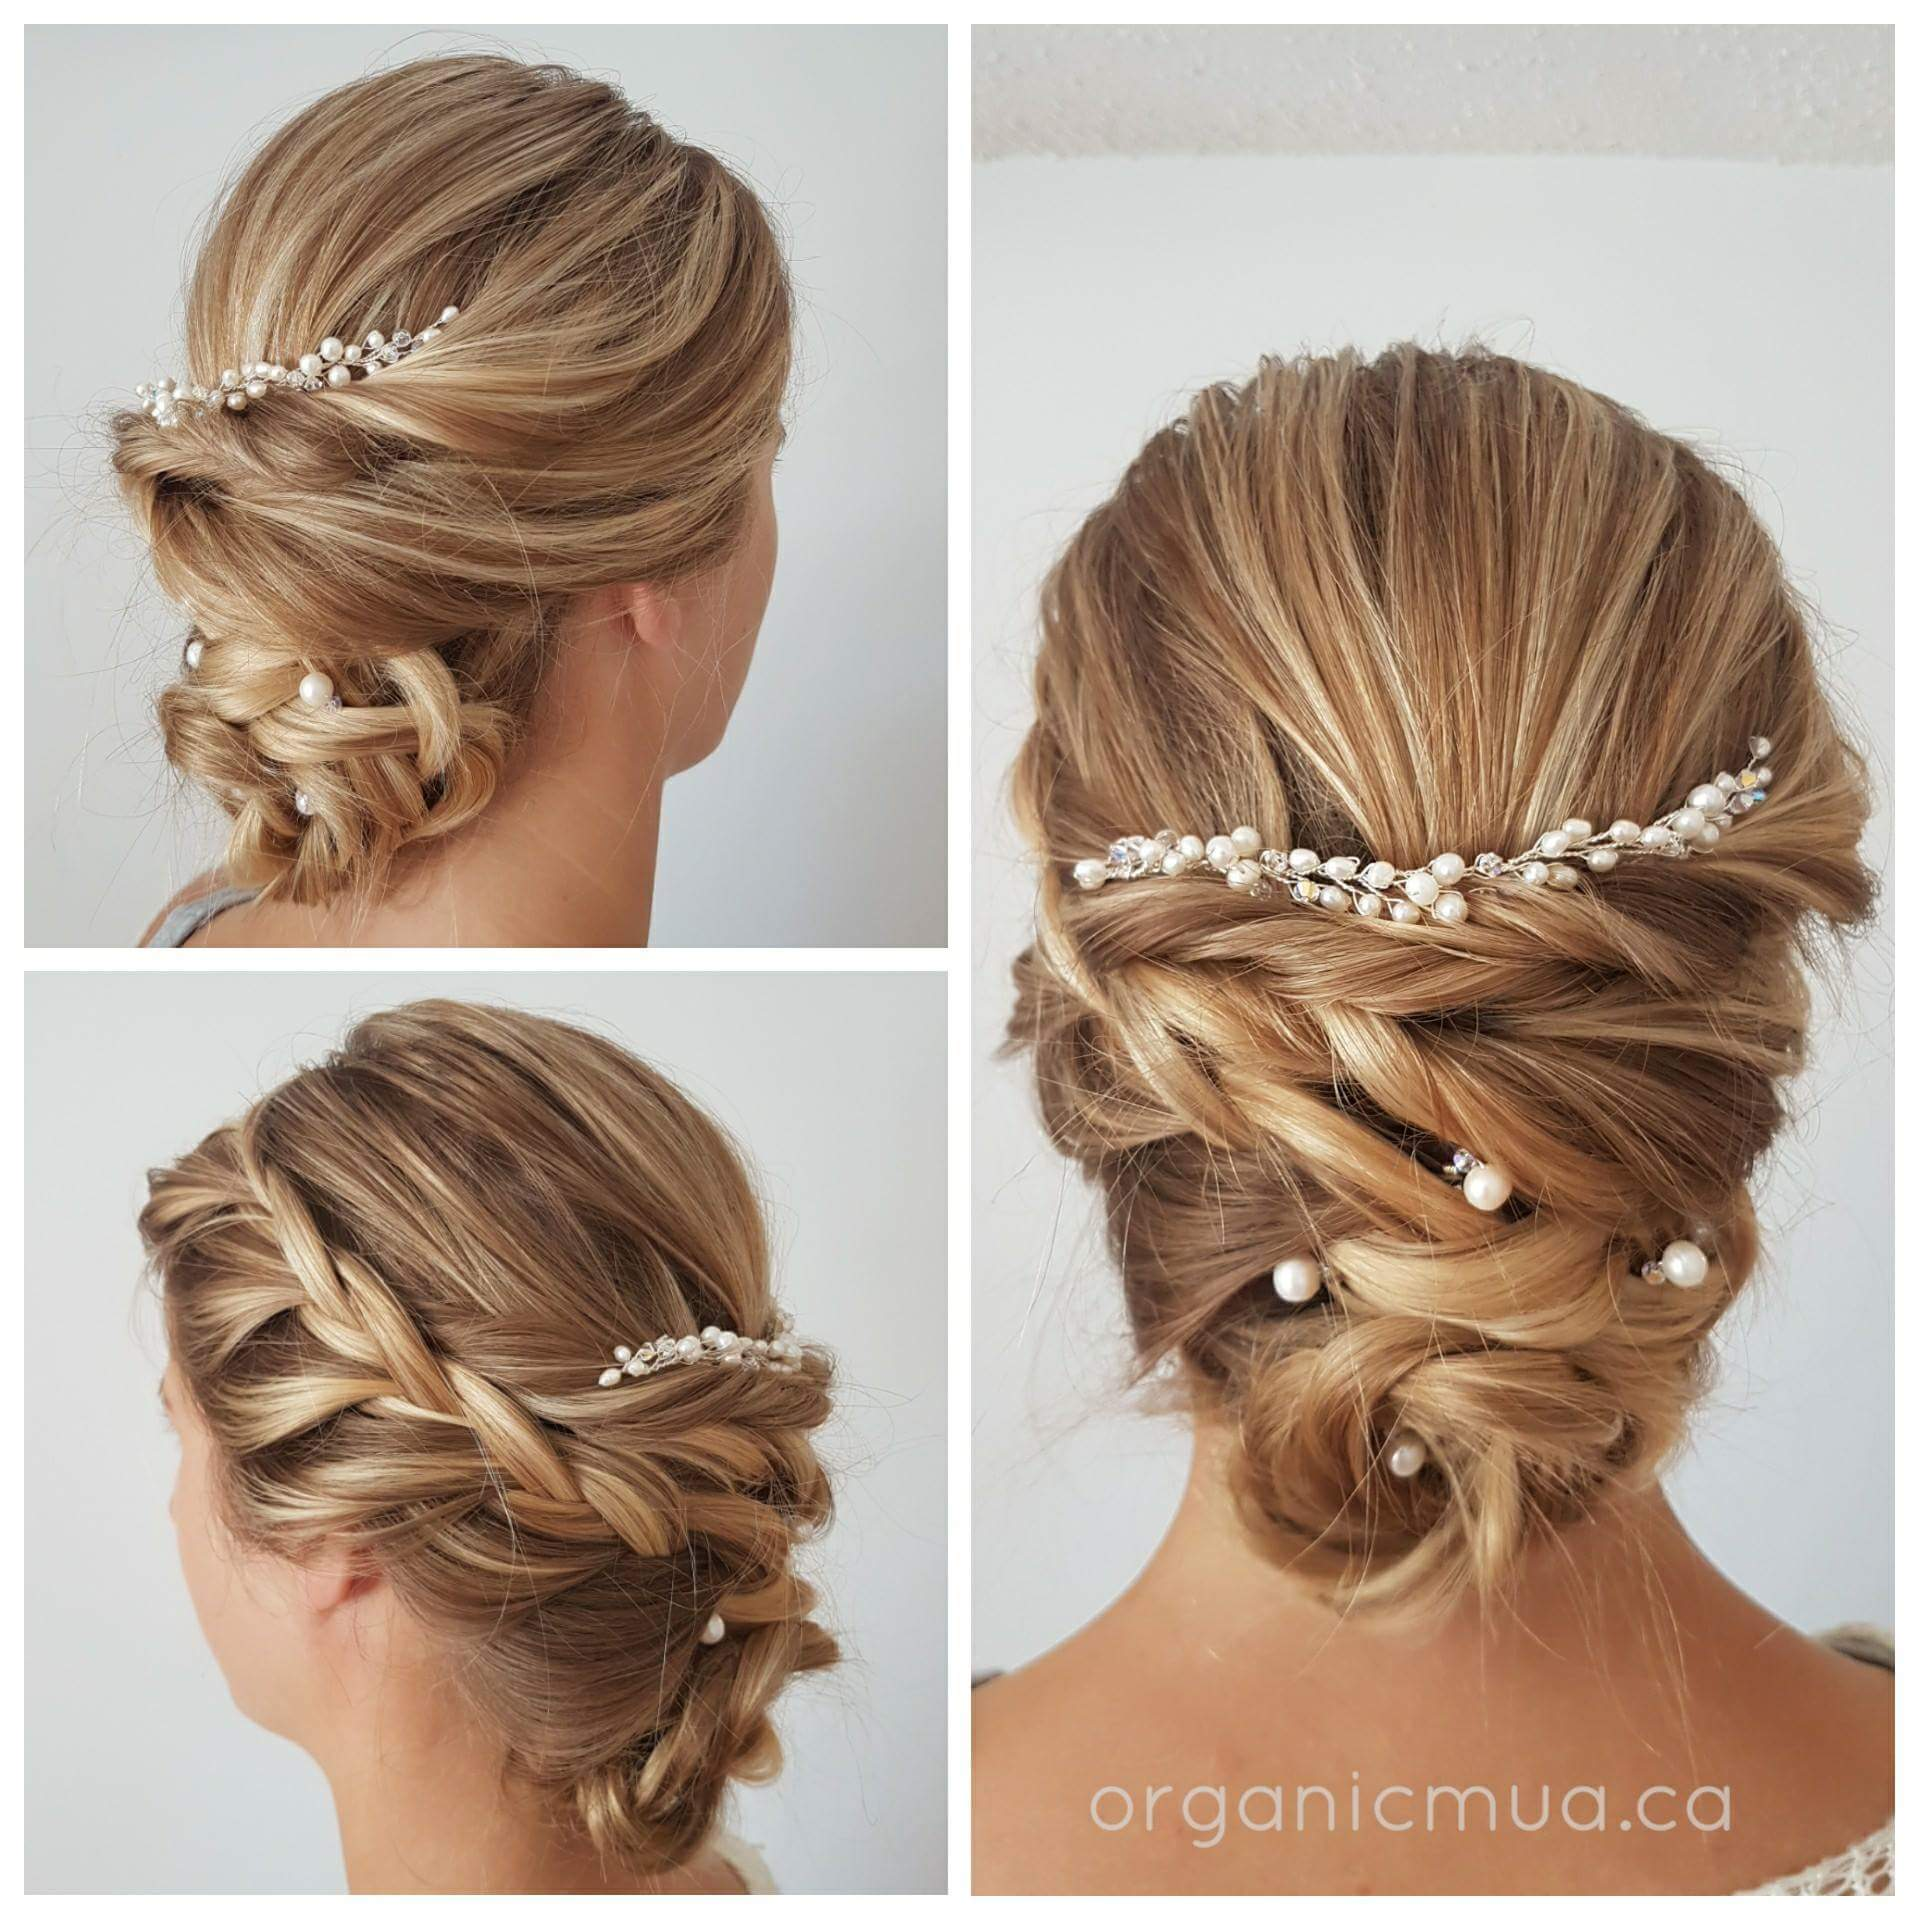 Wedding Hairstyles With Jewels: Thin Pearl Hair Vine With 5 Simple Pearl Hair Pins